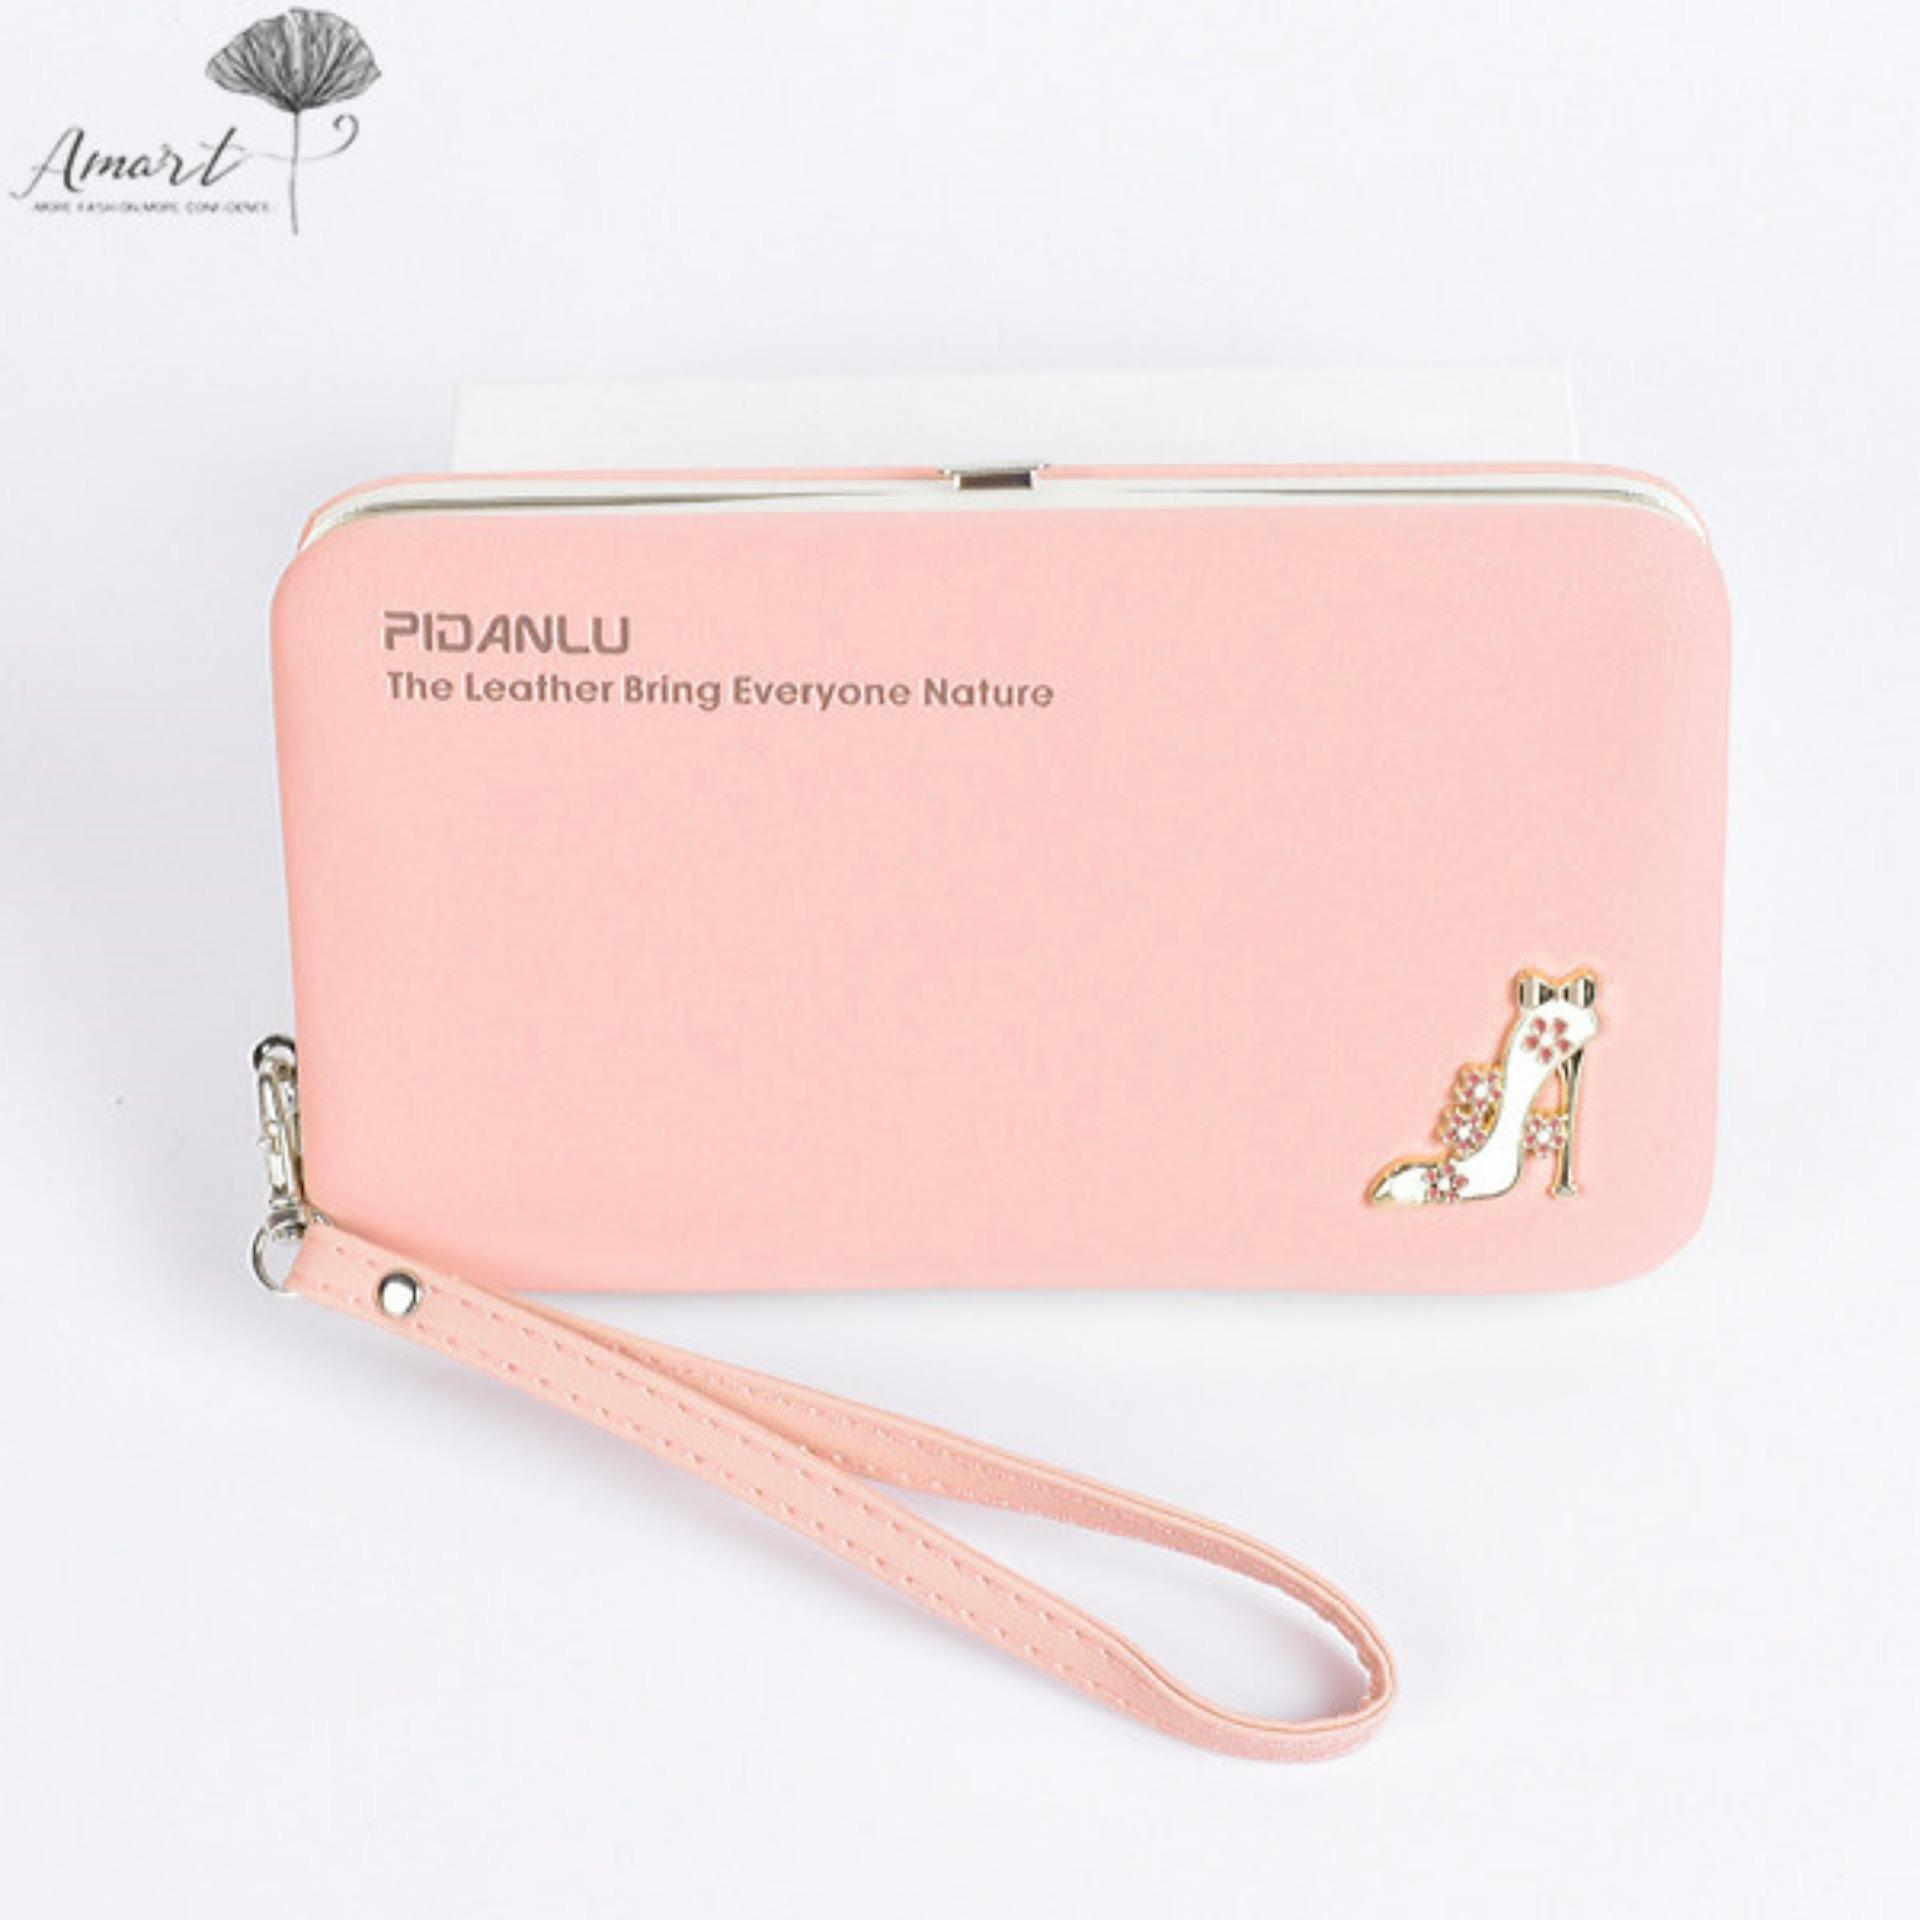 ... Clutch Wallet Long Card Holder Case Purse Handbag BA007-Gray - intlPHP360. PHP 364. Amart Lovely ...